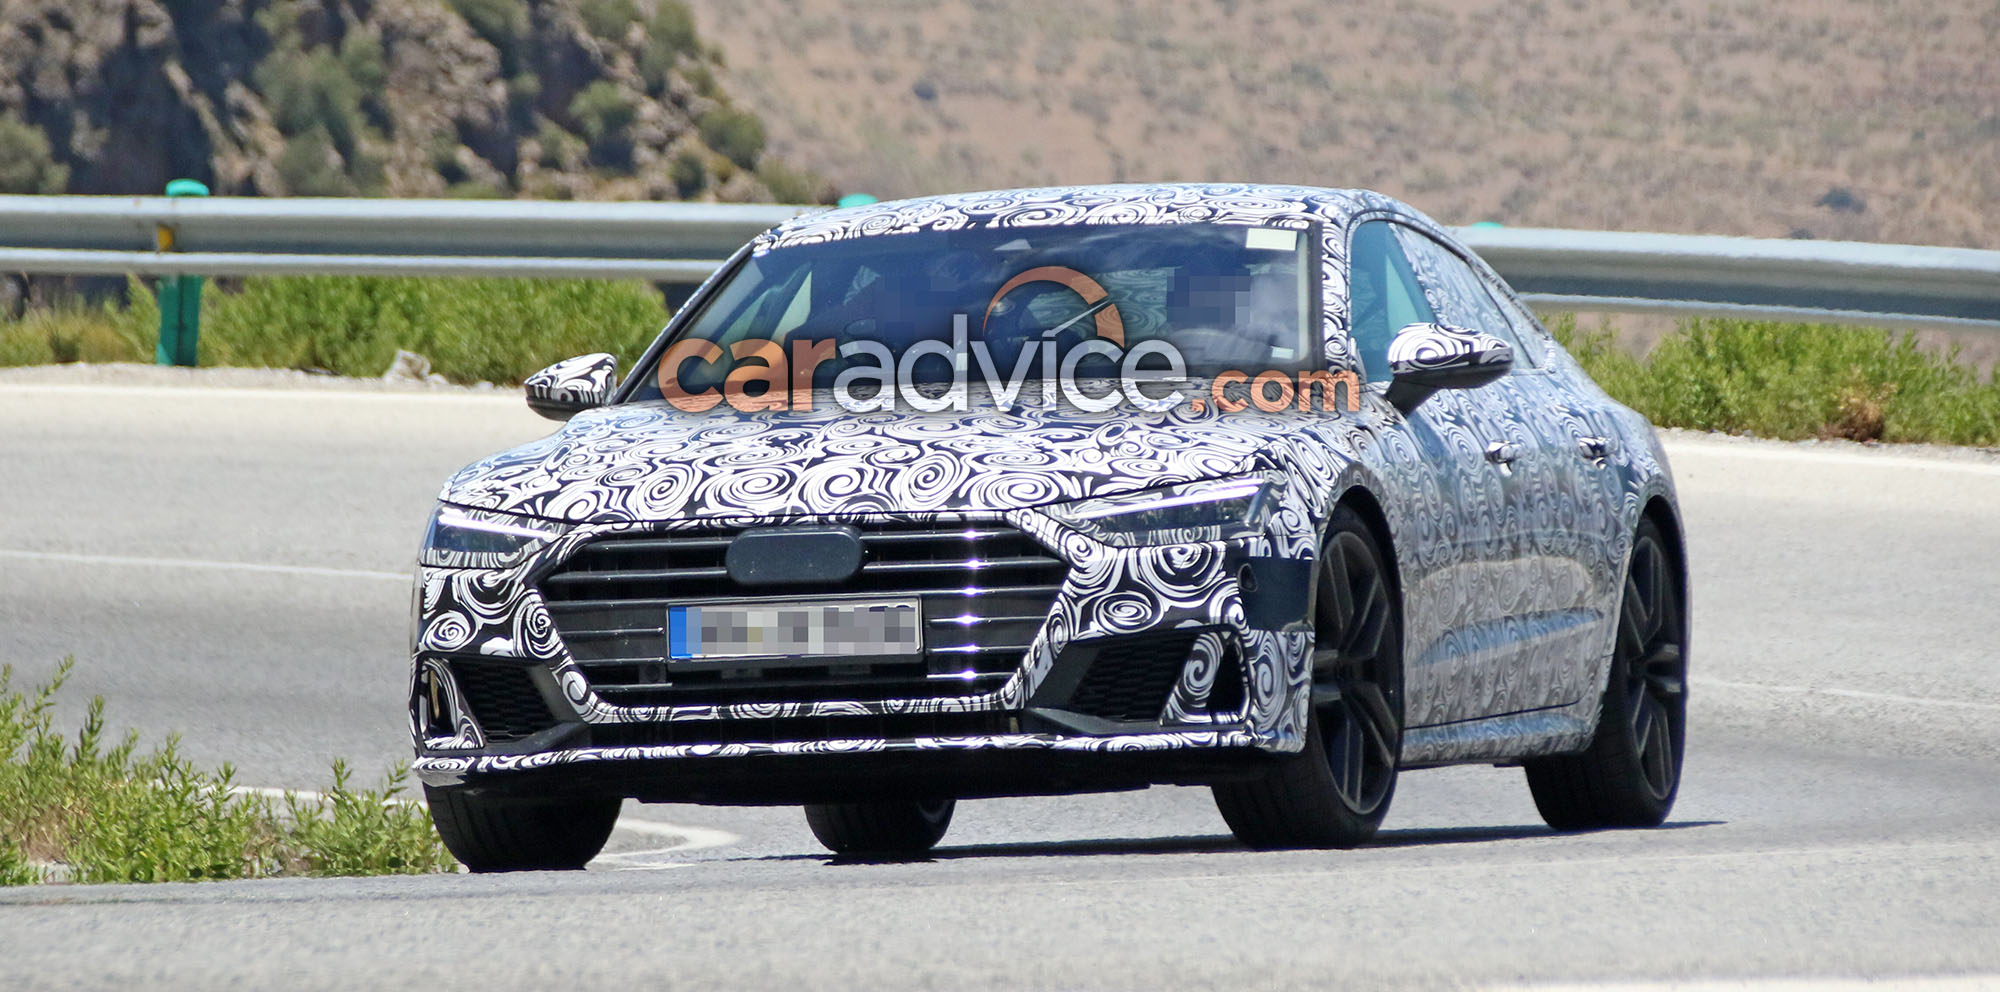 Audi S Spied Revealing Extra Details Photos CarAdvice - 2018 audi s7